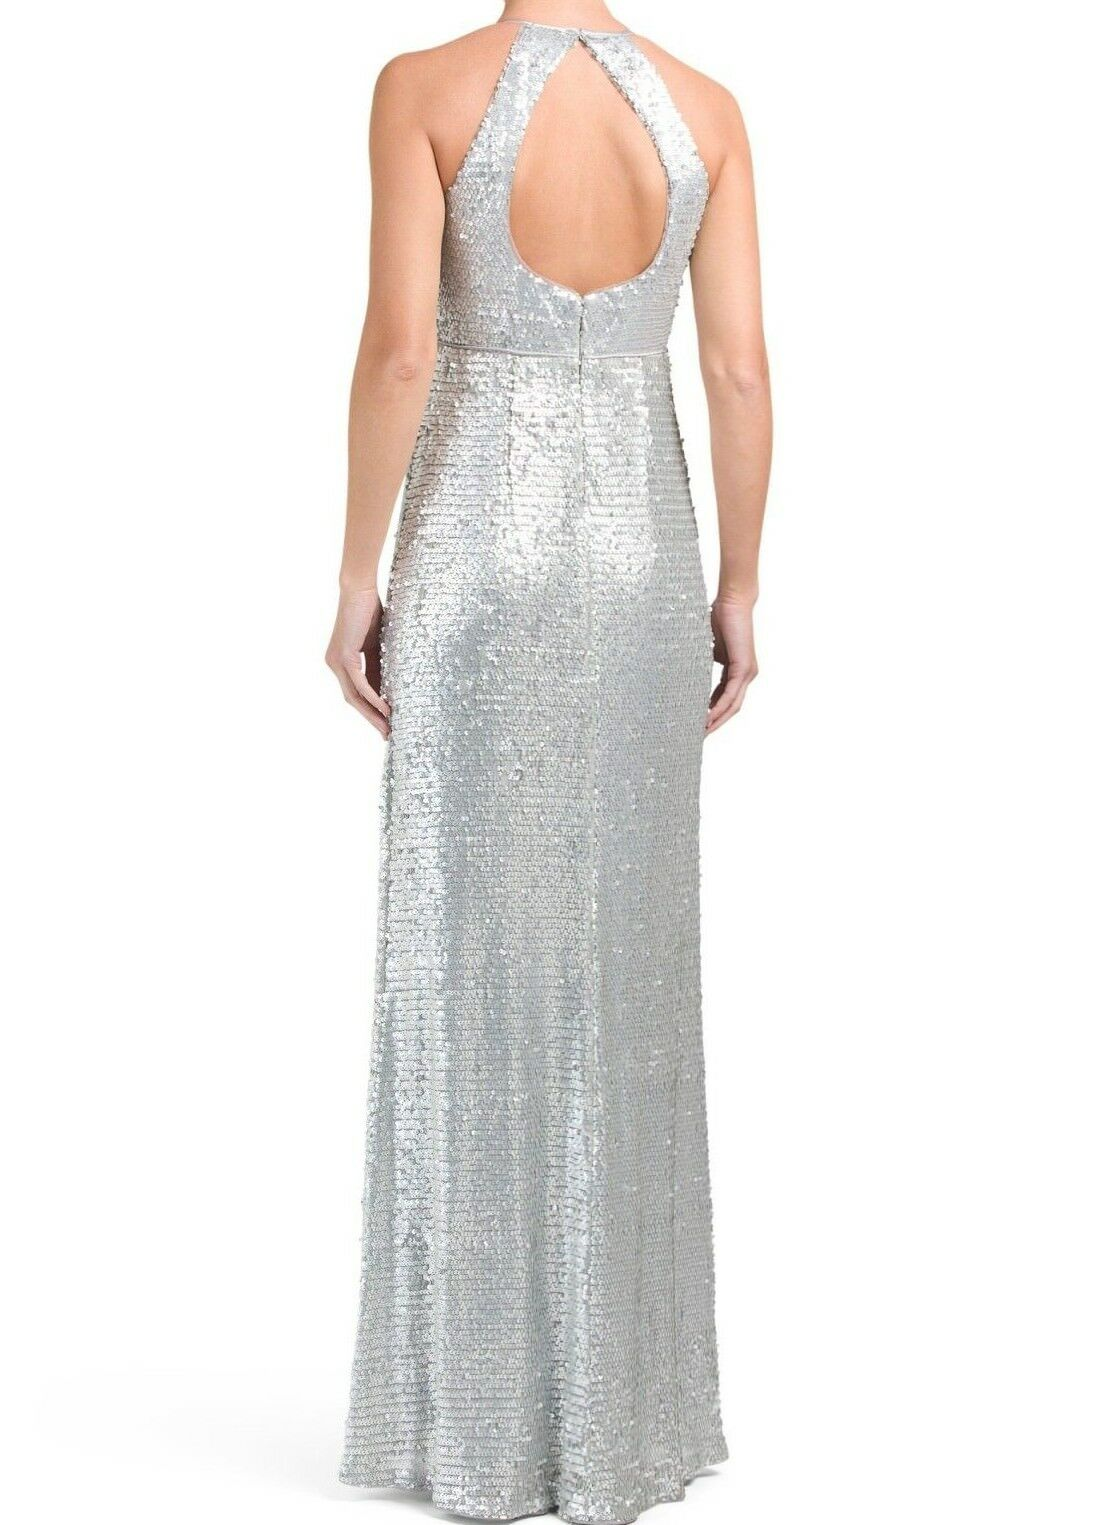 Adrianna Papell Halter Neck Piping Detail Keyhole Sequin Dress ...